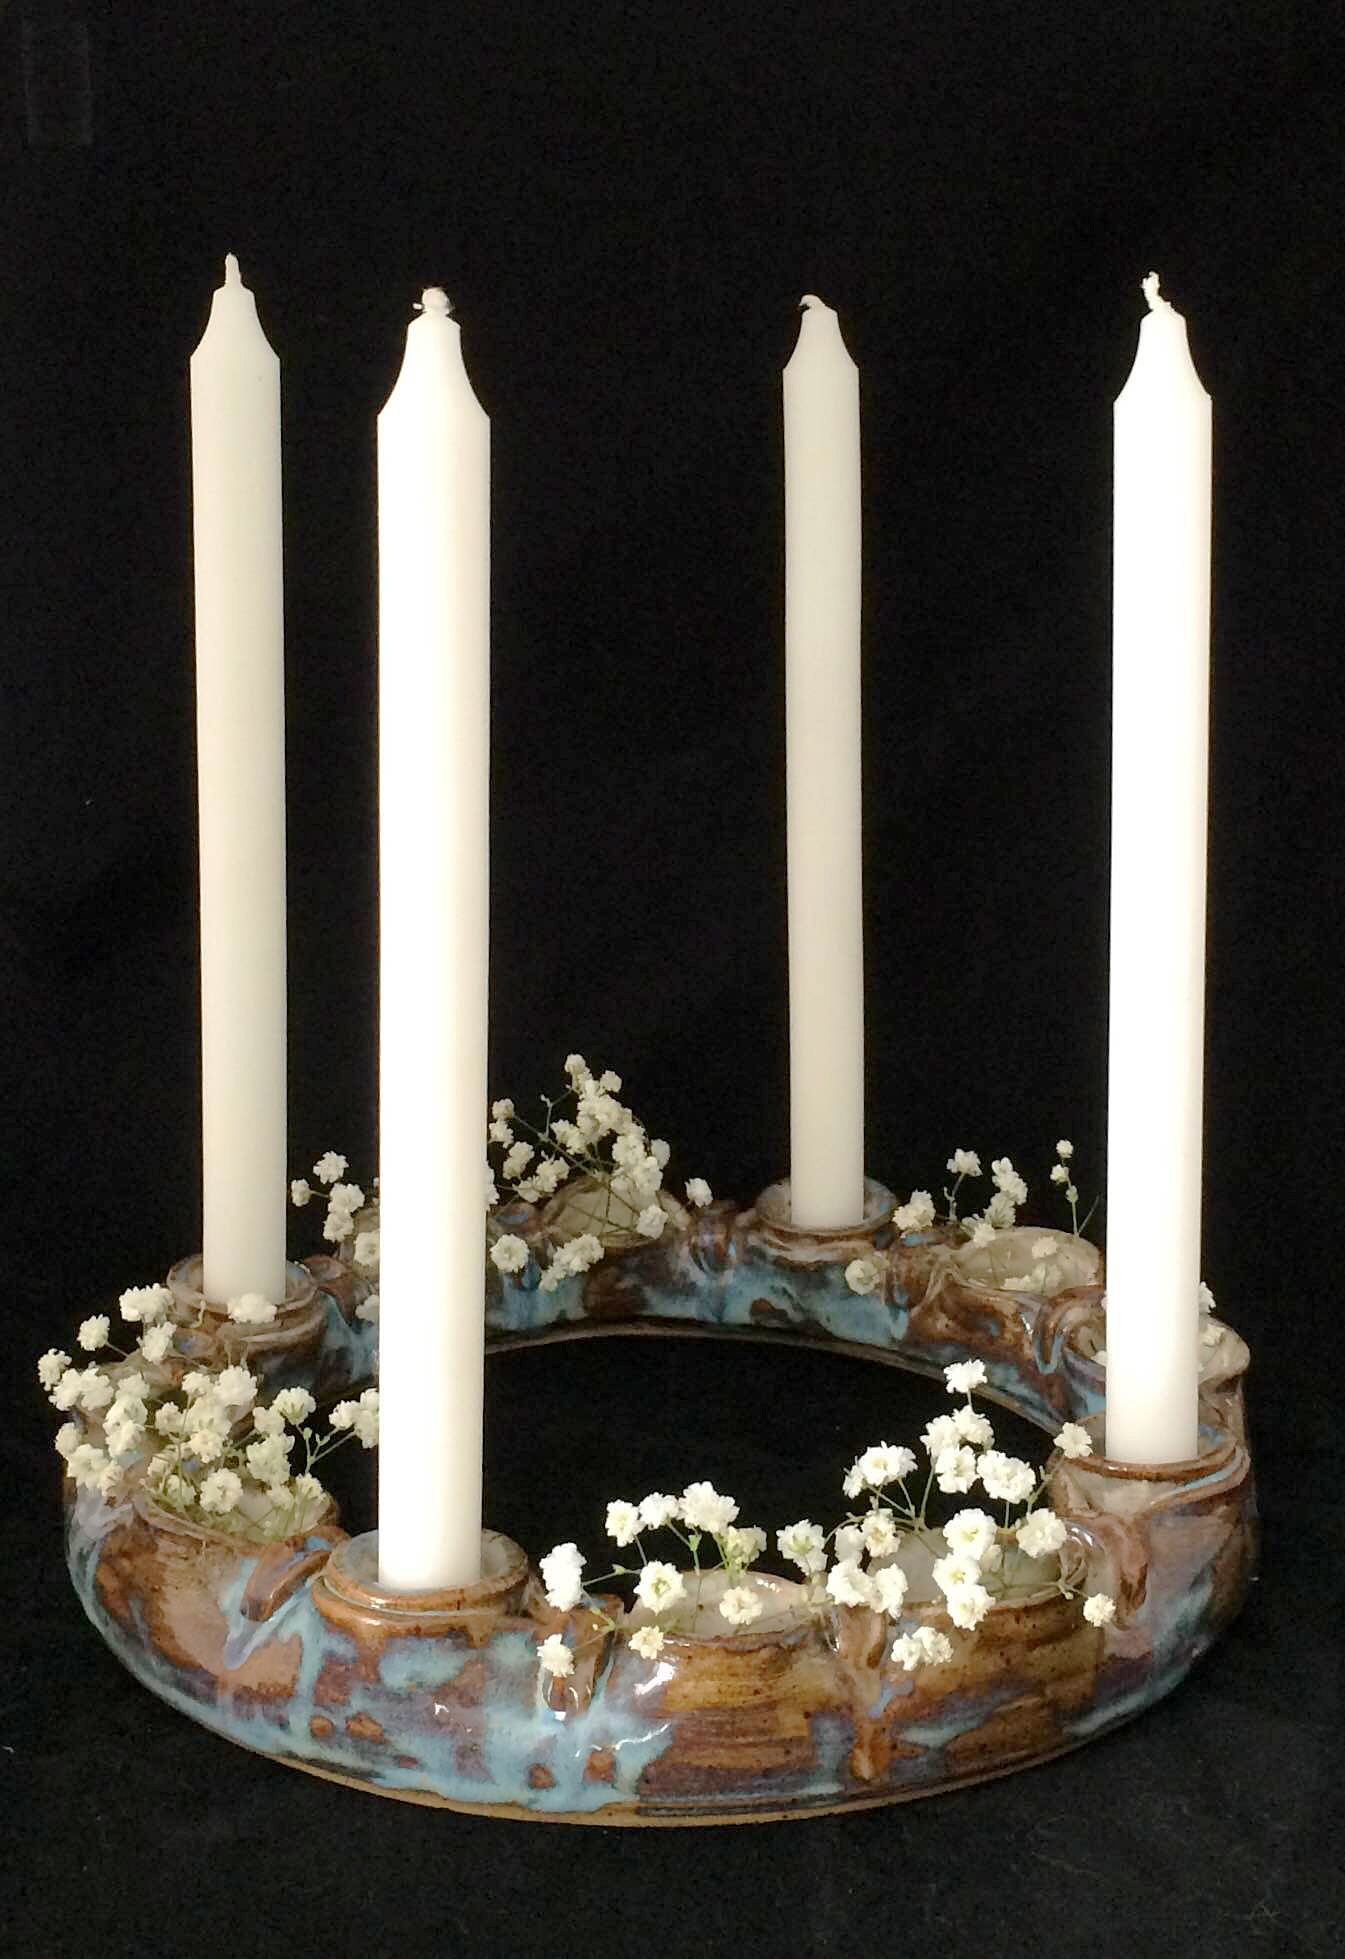 Pottery Wreath Advent Wreath Karenfisherpottery Com Advent Wreath Ceramic Candle Holders Rustic Themed Decor